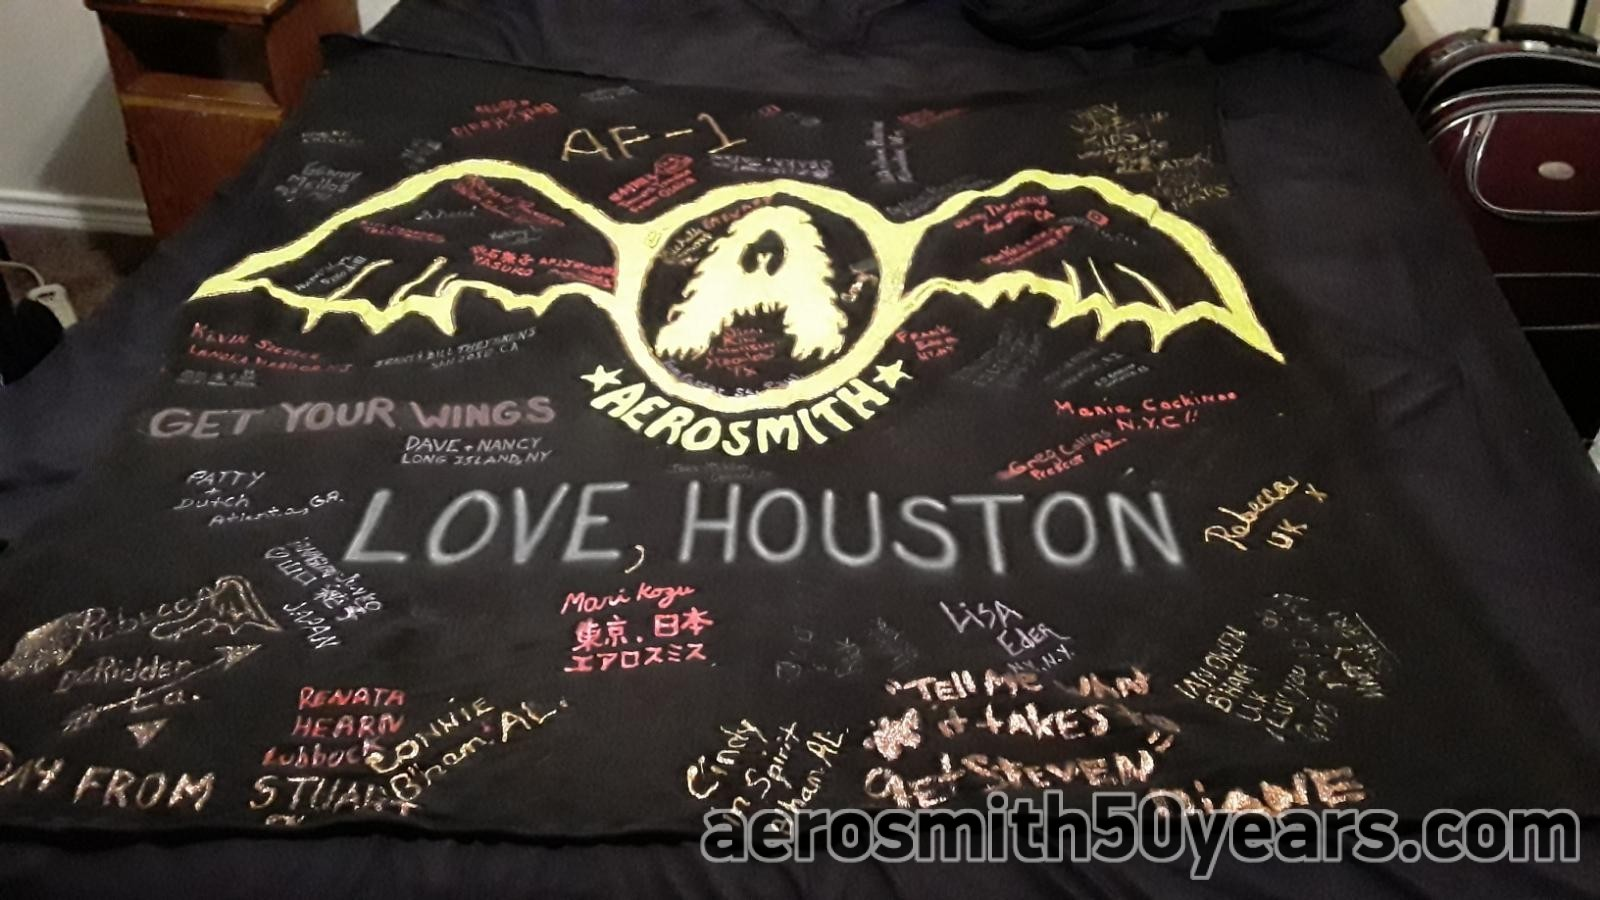 Houston, TX Banner Signed With Love From AF-1 Fans On The 1994 West Coast Travel Package. Aerosmith Or Bust! (Thanks To Long Time Fan And Friend Mike Sousa For Sharing It!)